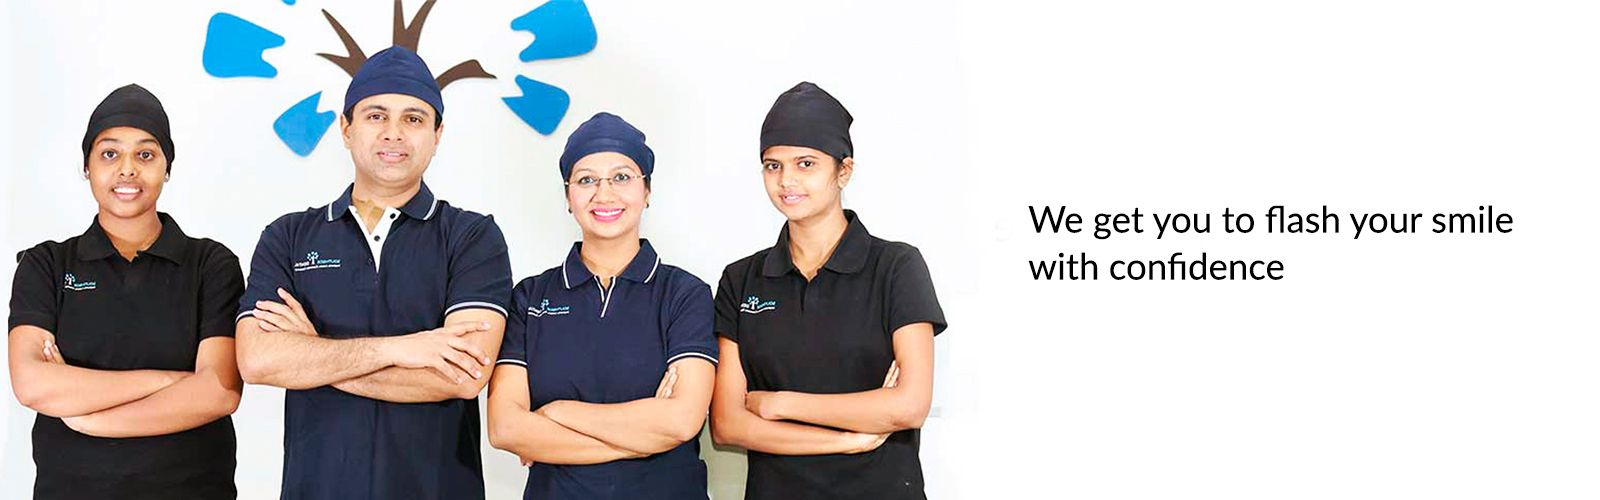 best dental clinic in bangalore, karnataka, india